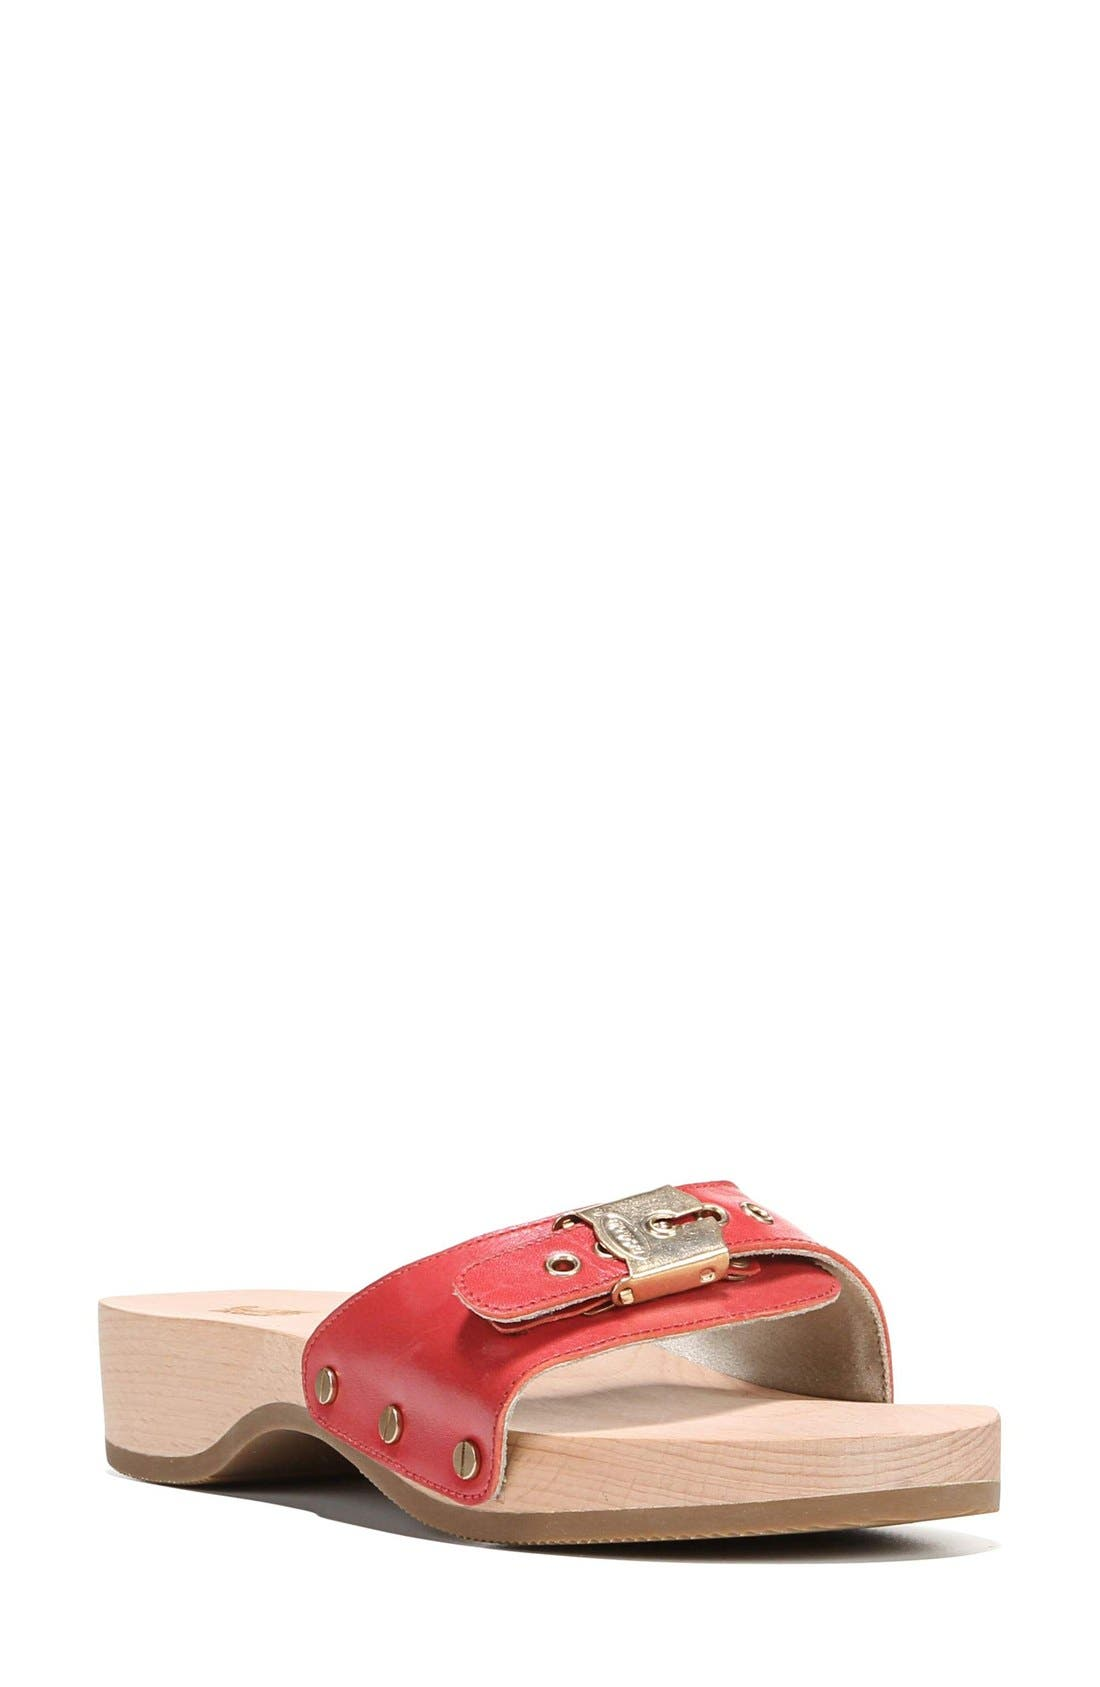 Original Collection Sandal,                         Main,                         color, Red